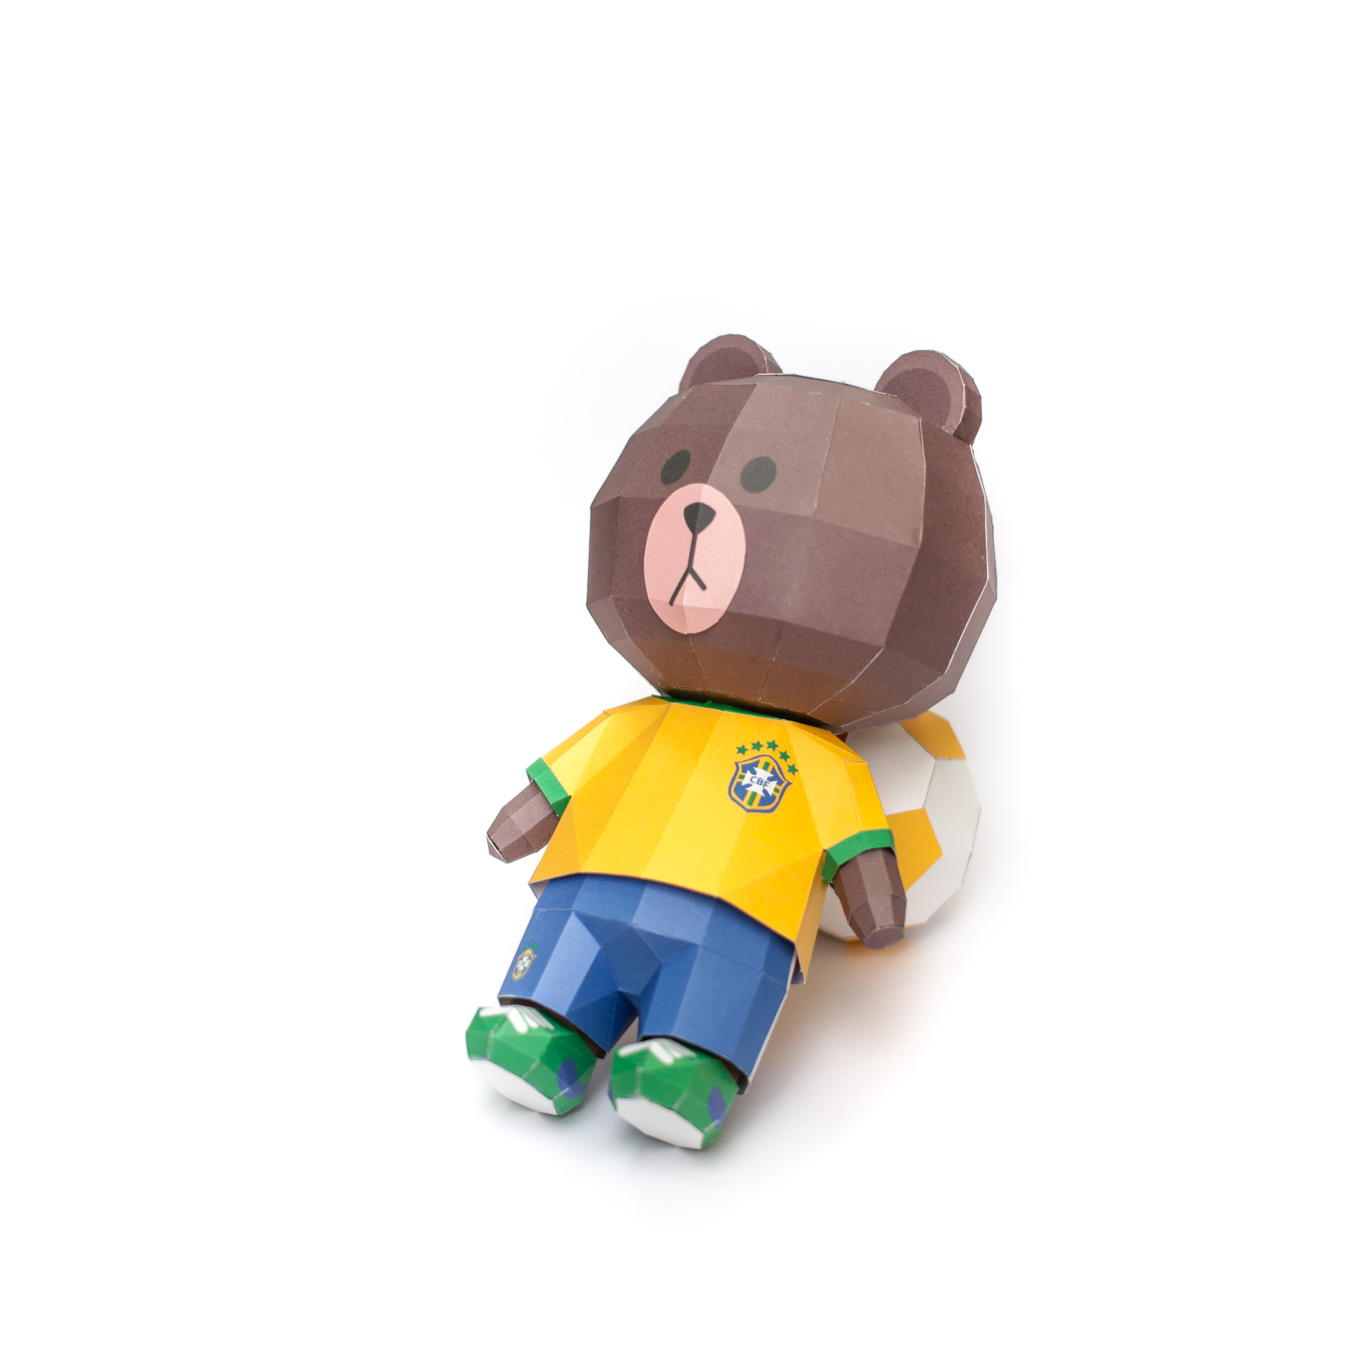 LINE Brown Bear in FIFA World Cup 2014 Brazil Uniform Papercraft Model Finished 003